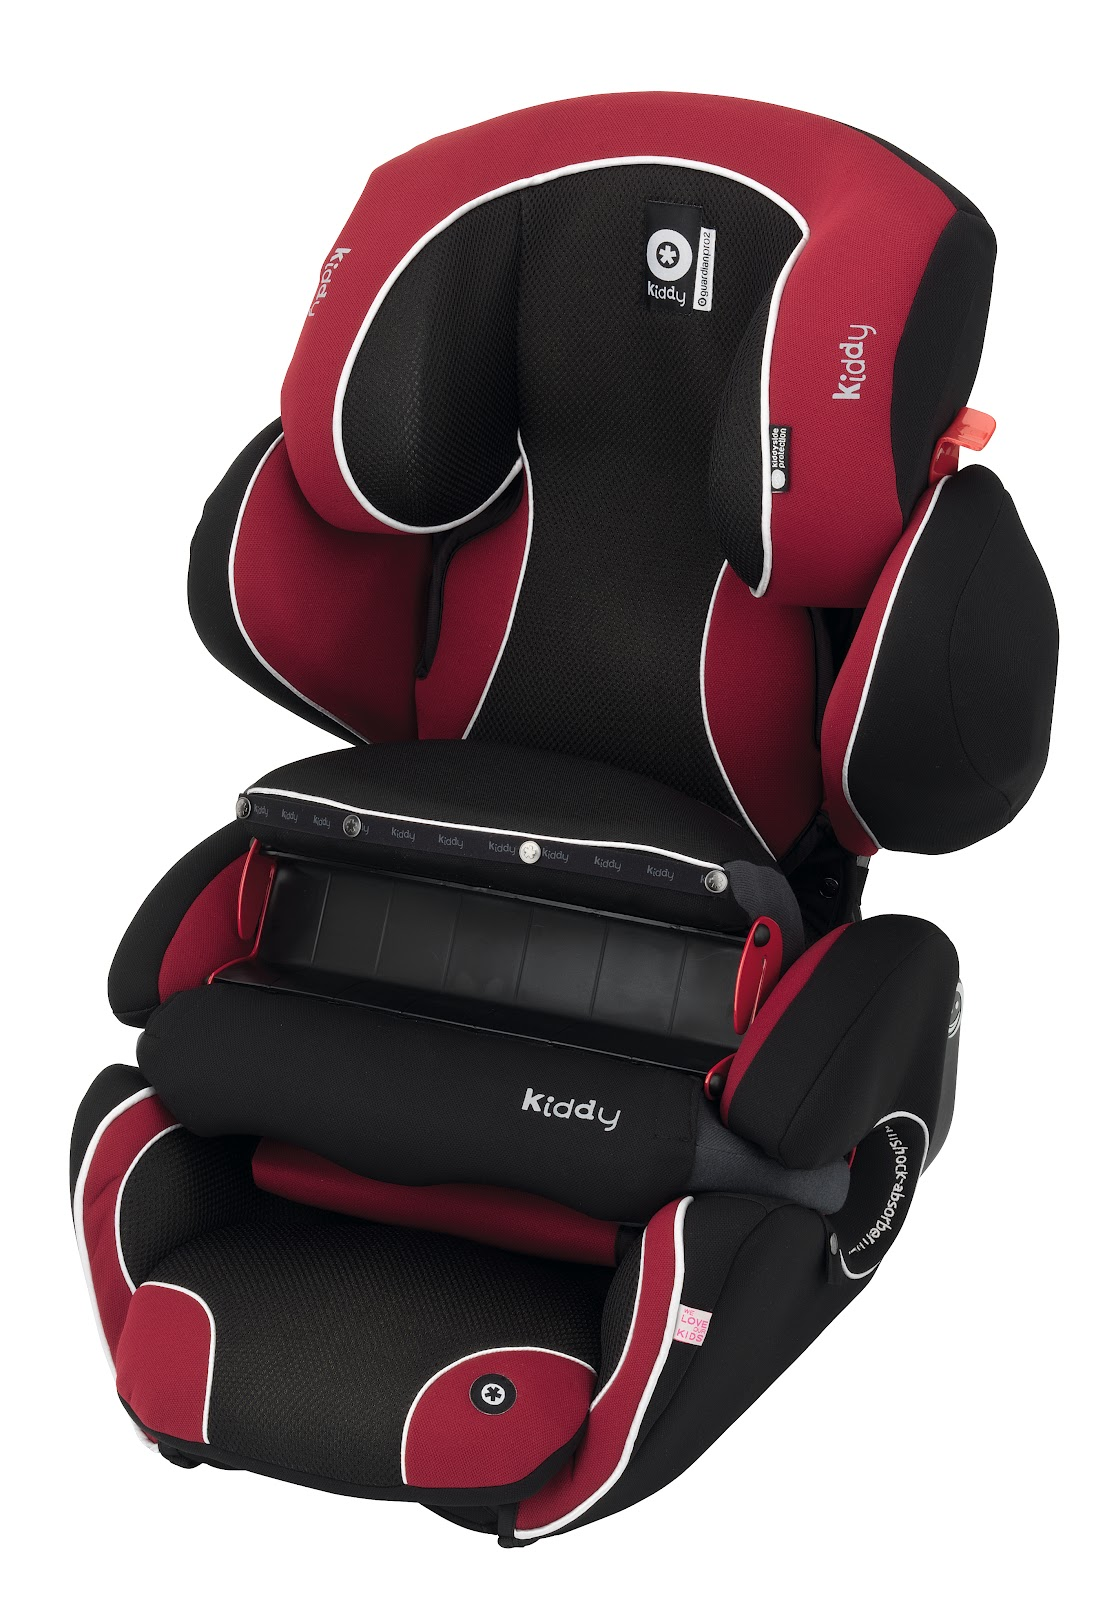 kate takes 5 competition win a kiddy guardian pro 2 car seat worth 225. Black Bedroom Furniture Sets. Home Design Ideas